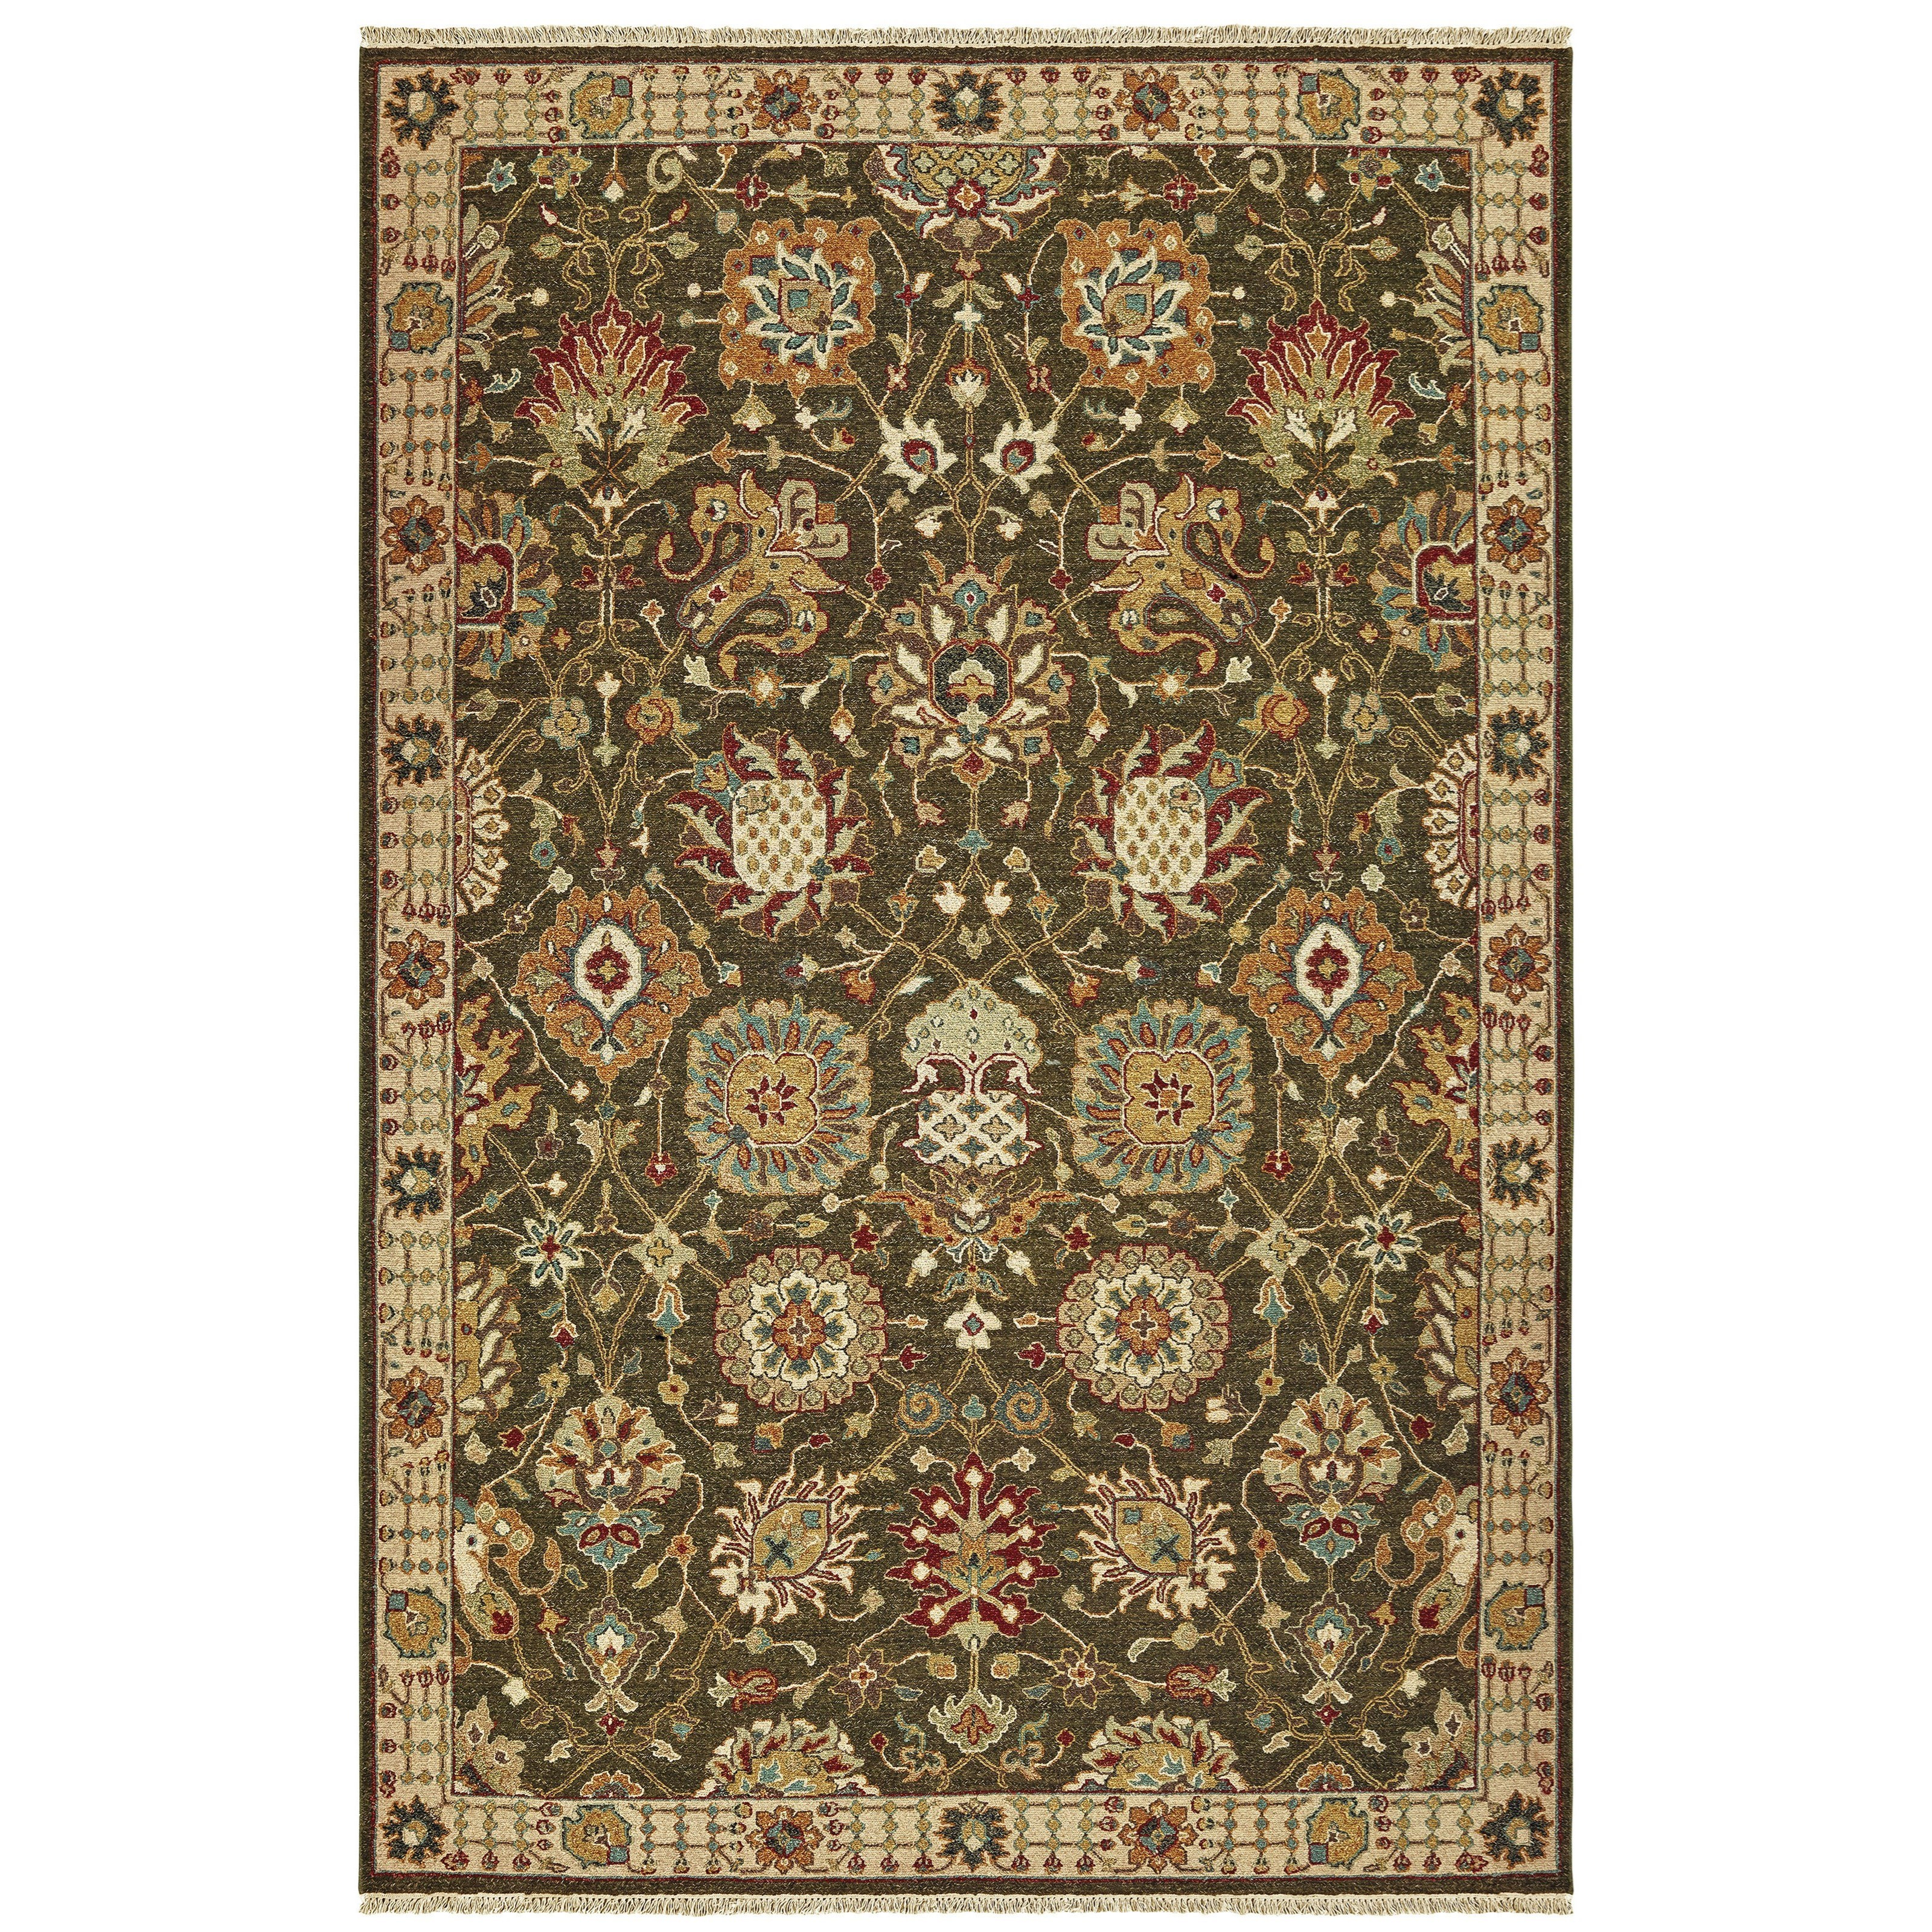 Angora 8' X 10' Rectangle Rug by Oriental Weavers at Darvin Furniture